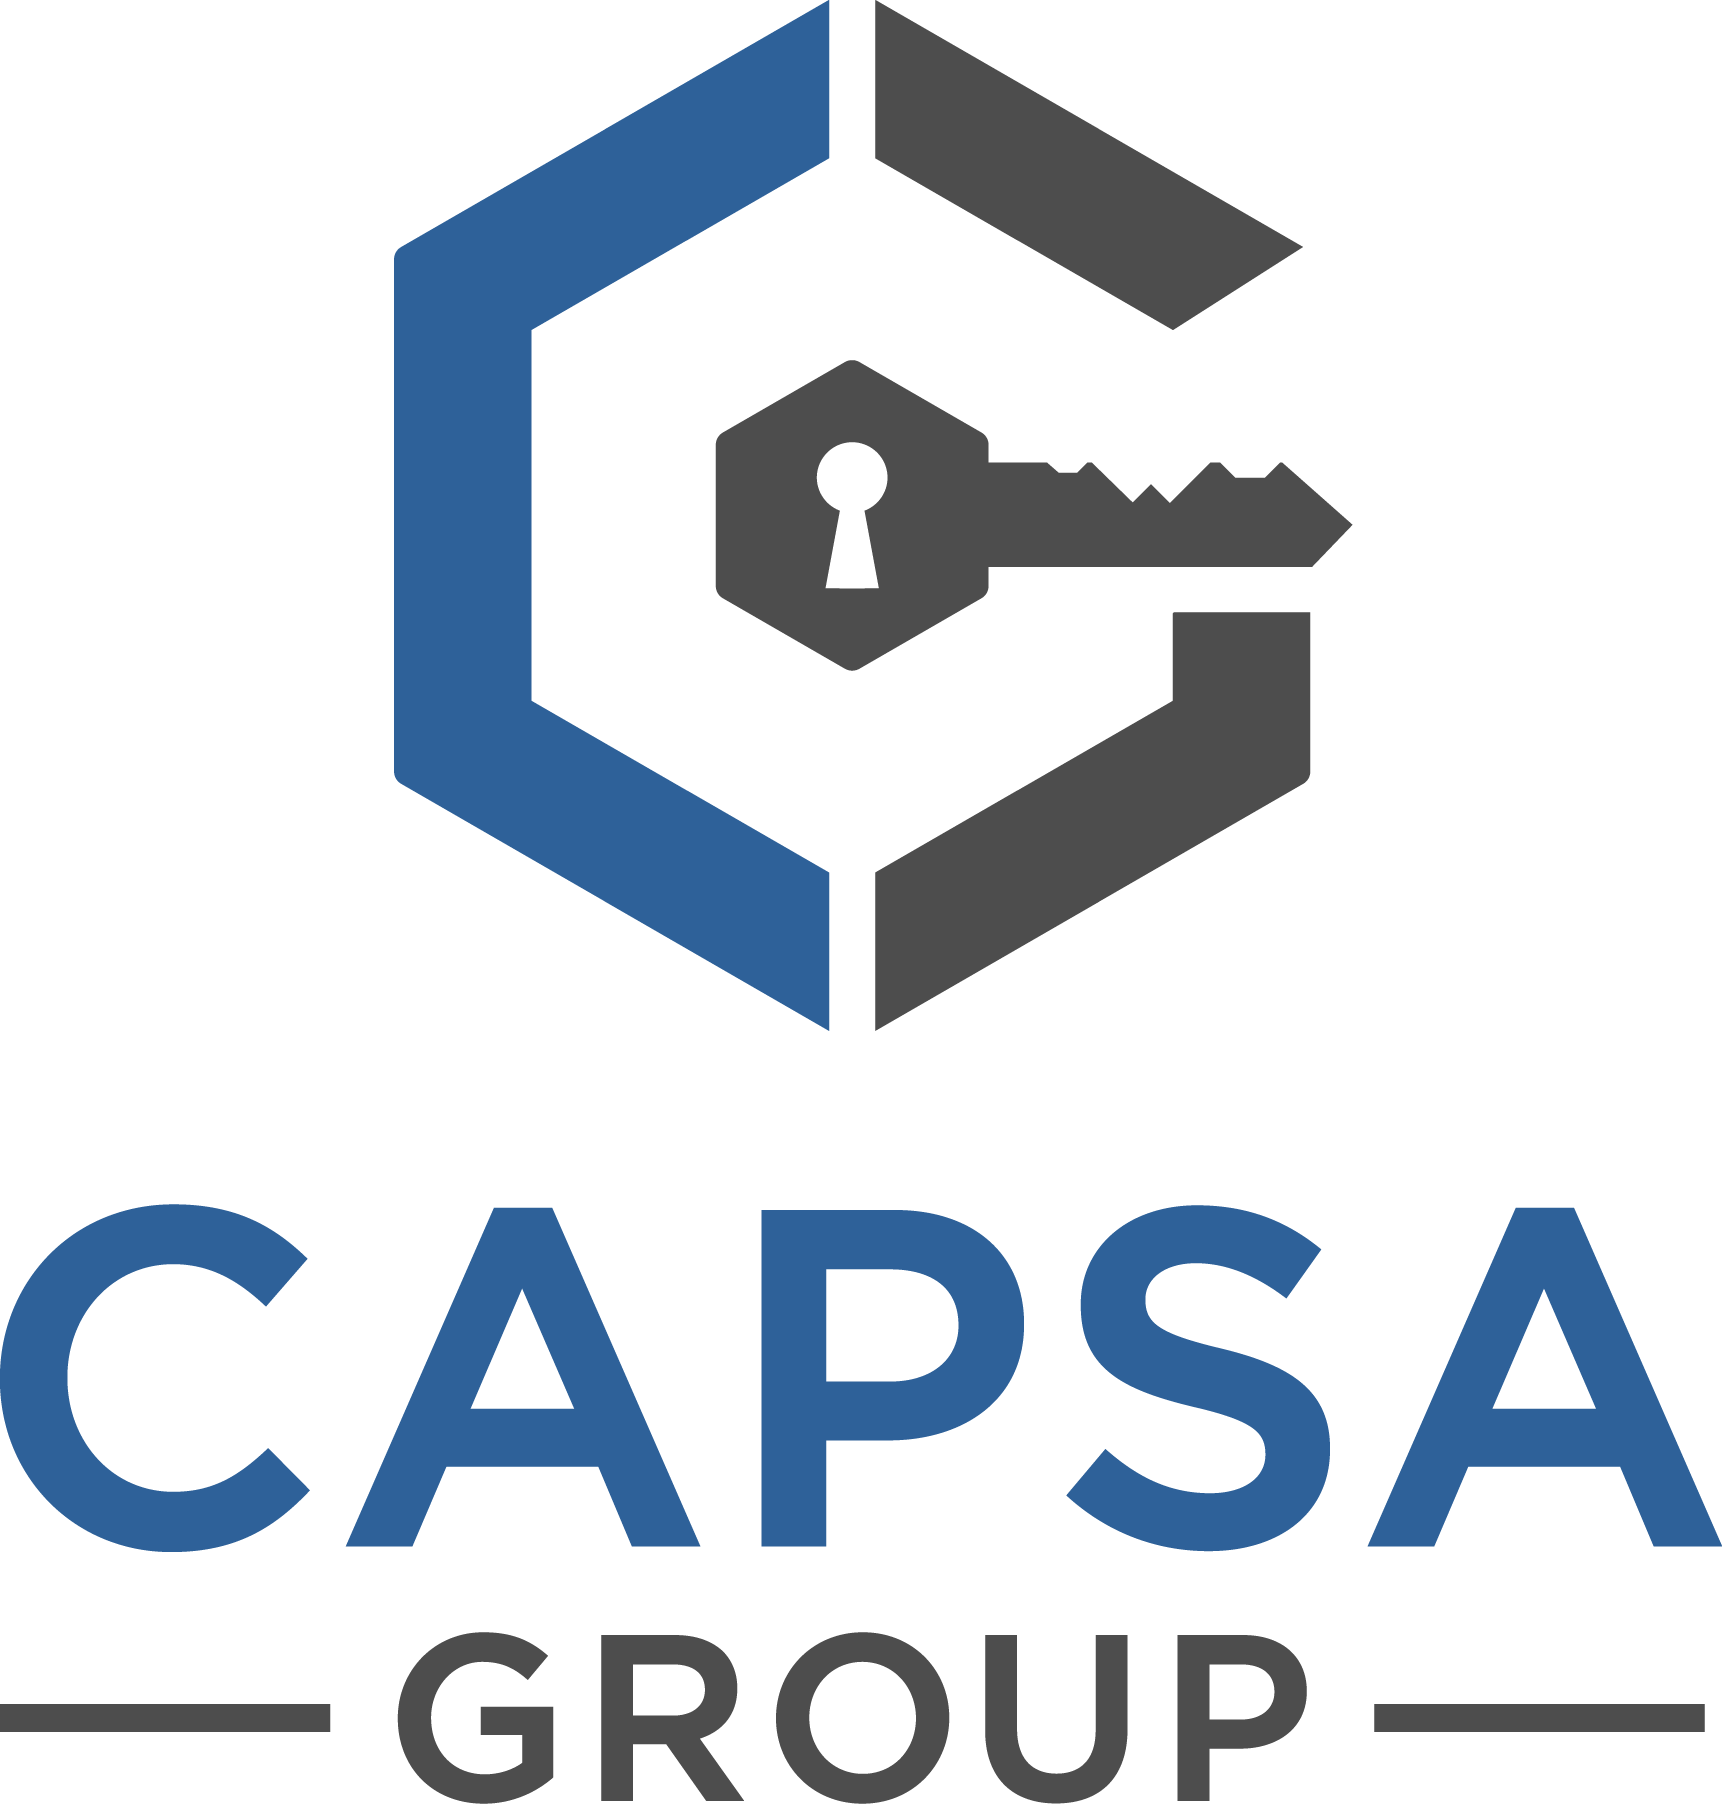 Capsa Group (Transparent).png